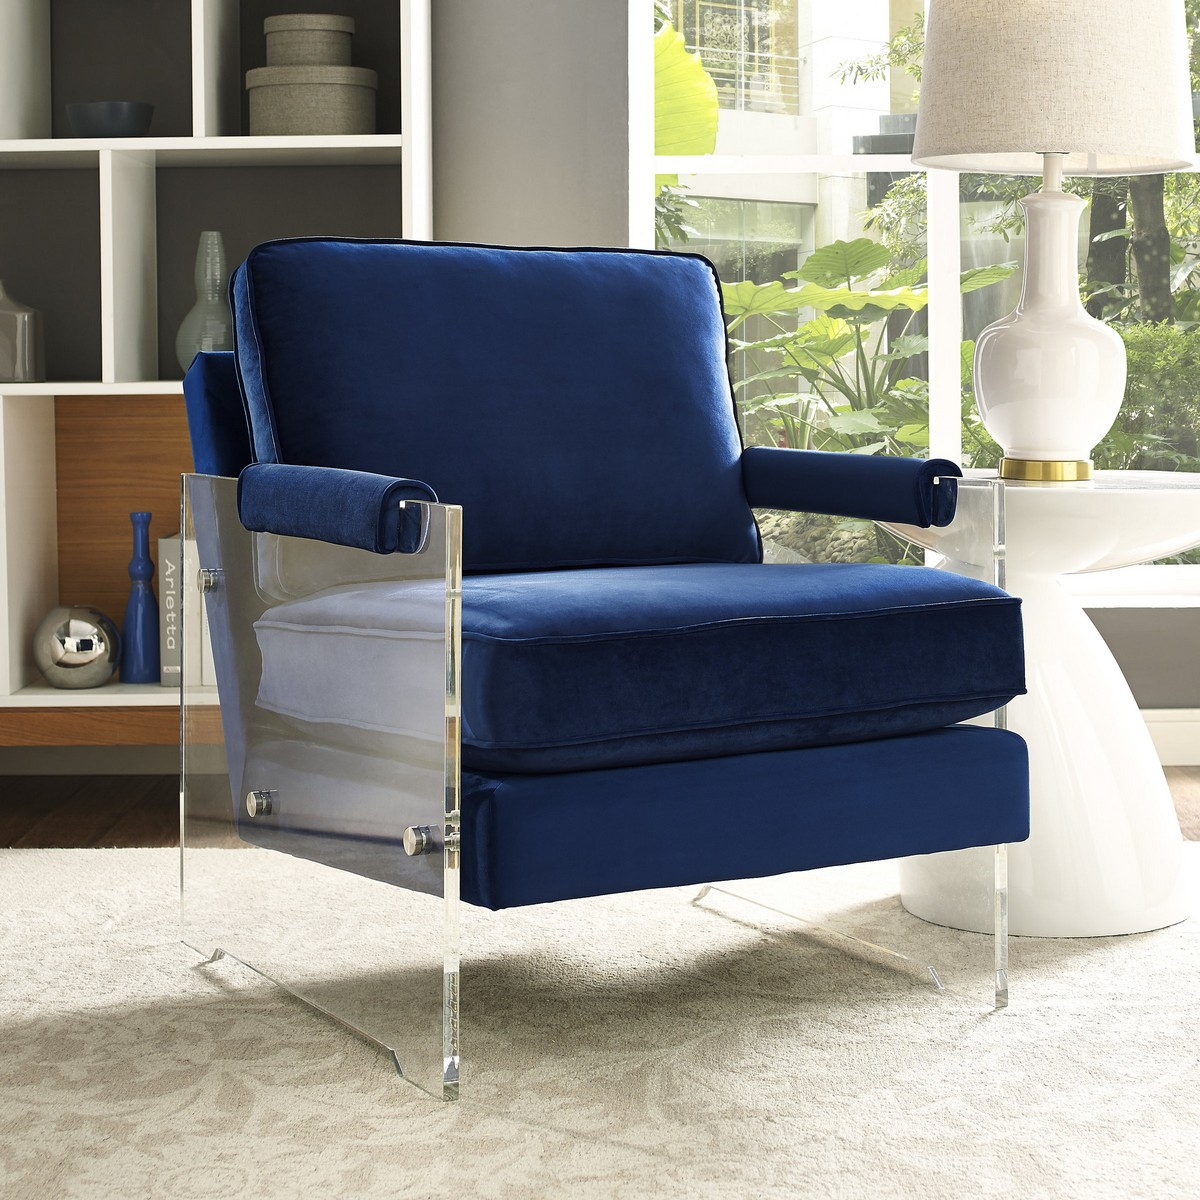 Acrylic Chair Tov Furniture Serena Navy Velvet Lucite Chair A94 At